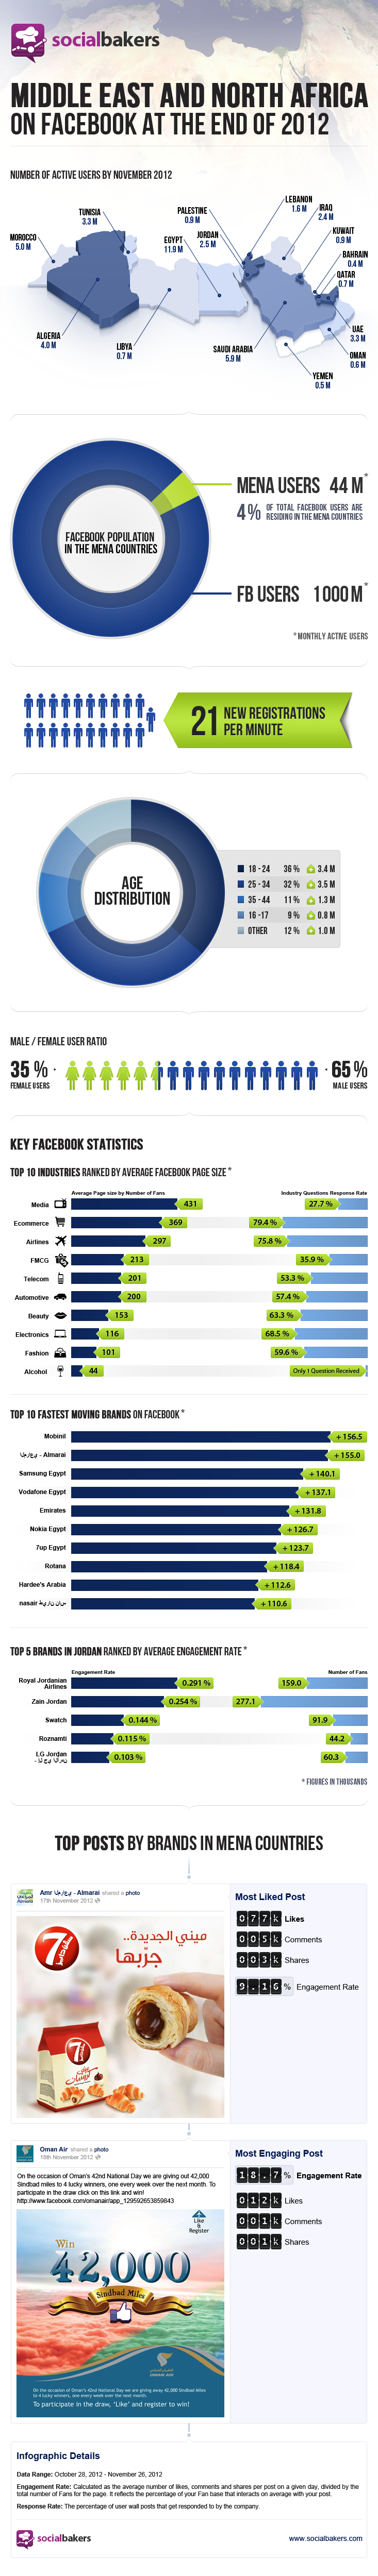 Infographic - Facebook In The Middle East & North Africa